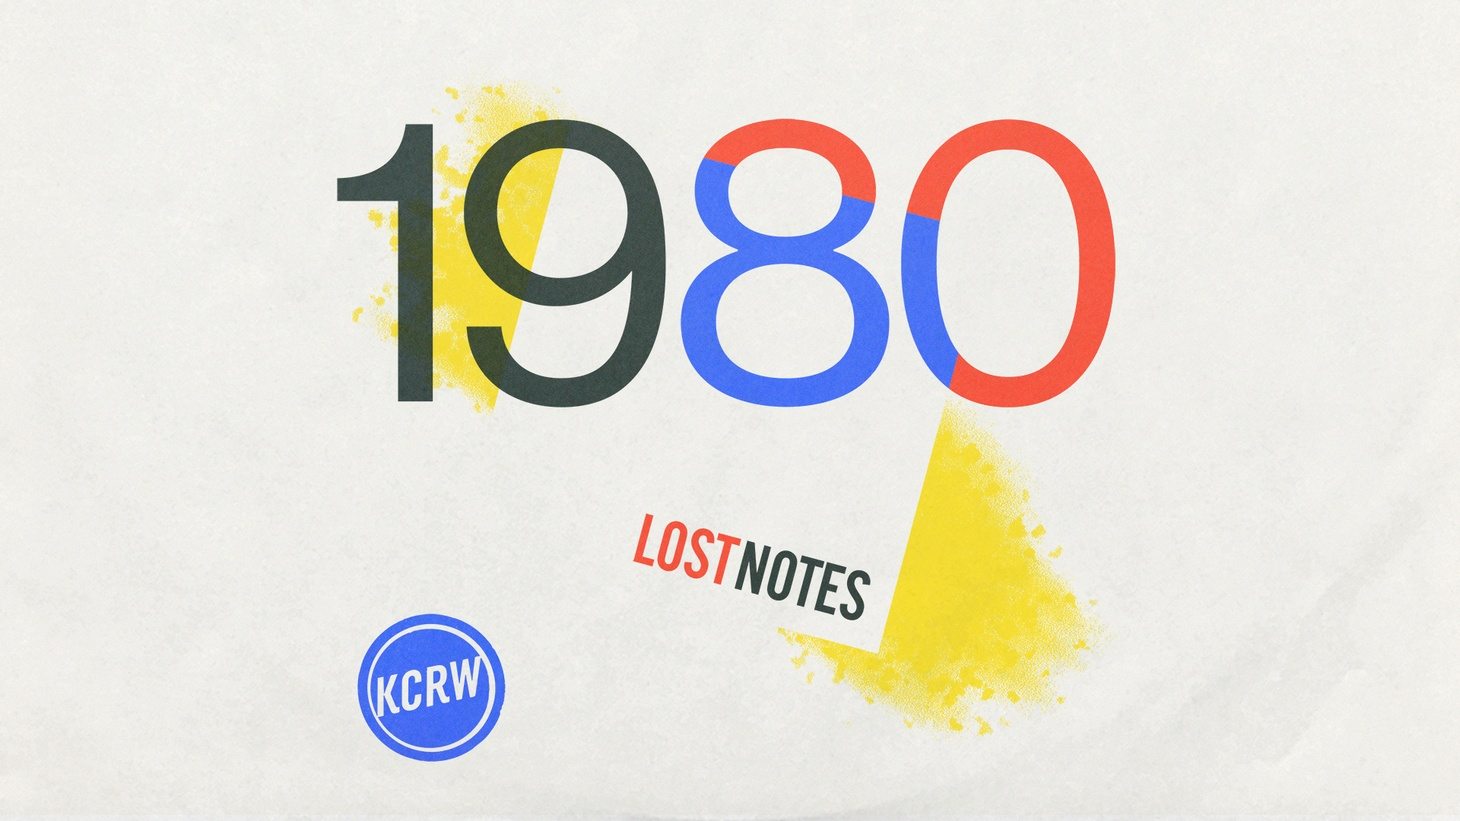 "The third season of KCRW's acclaimed music documentary podcast, Lost Notes, drops this week. The challenge of ""Lost Notes: 1980"" was to craft stories that reflected both that era and our own."